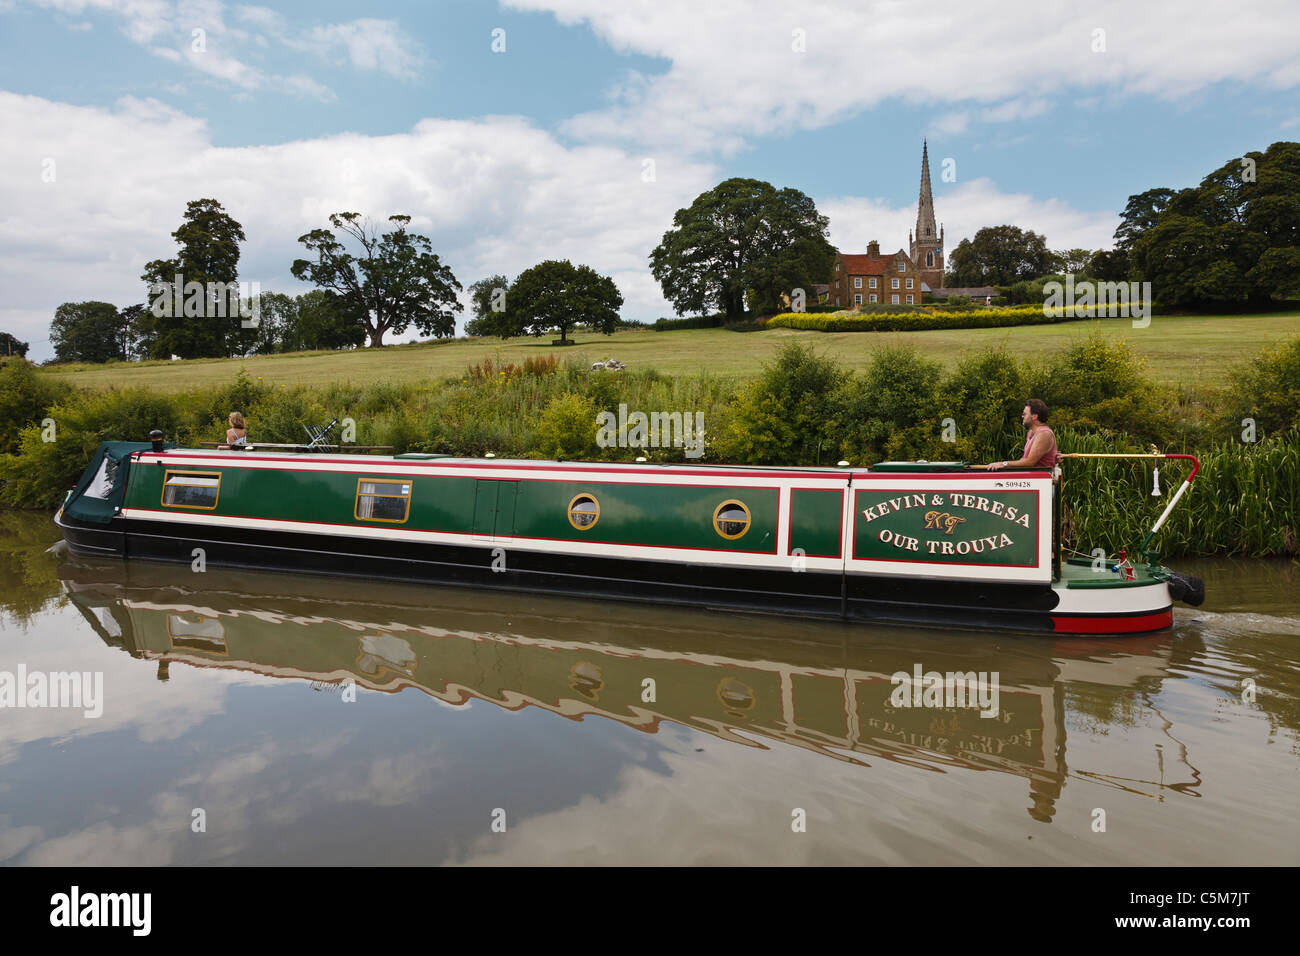 Narrowboat on the Grand Union Canal at Braunston, Northamptonshire - Stock Image